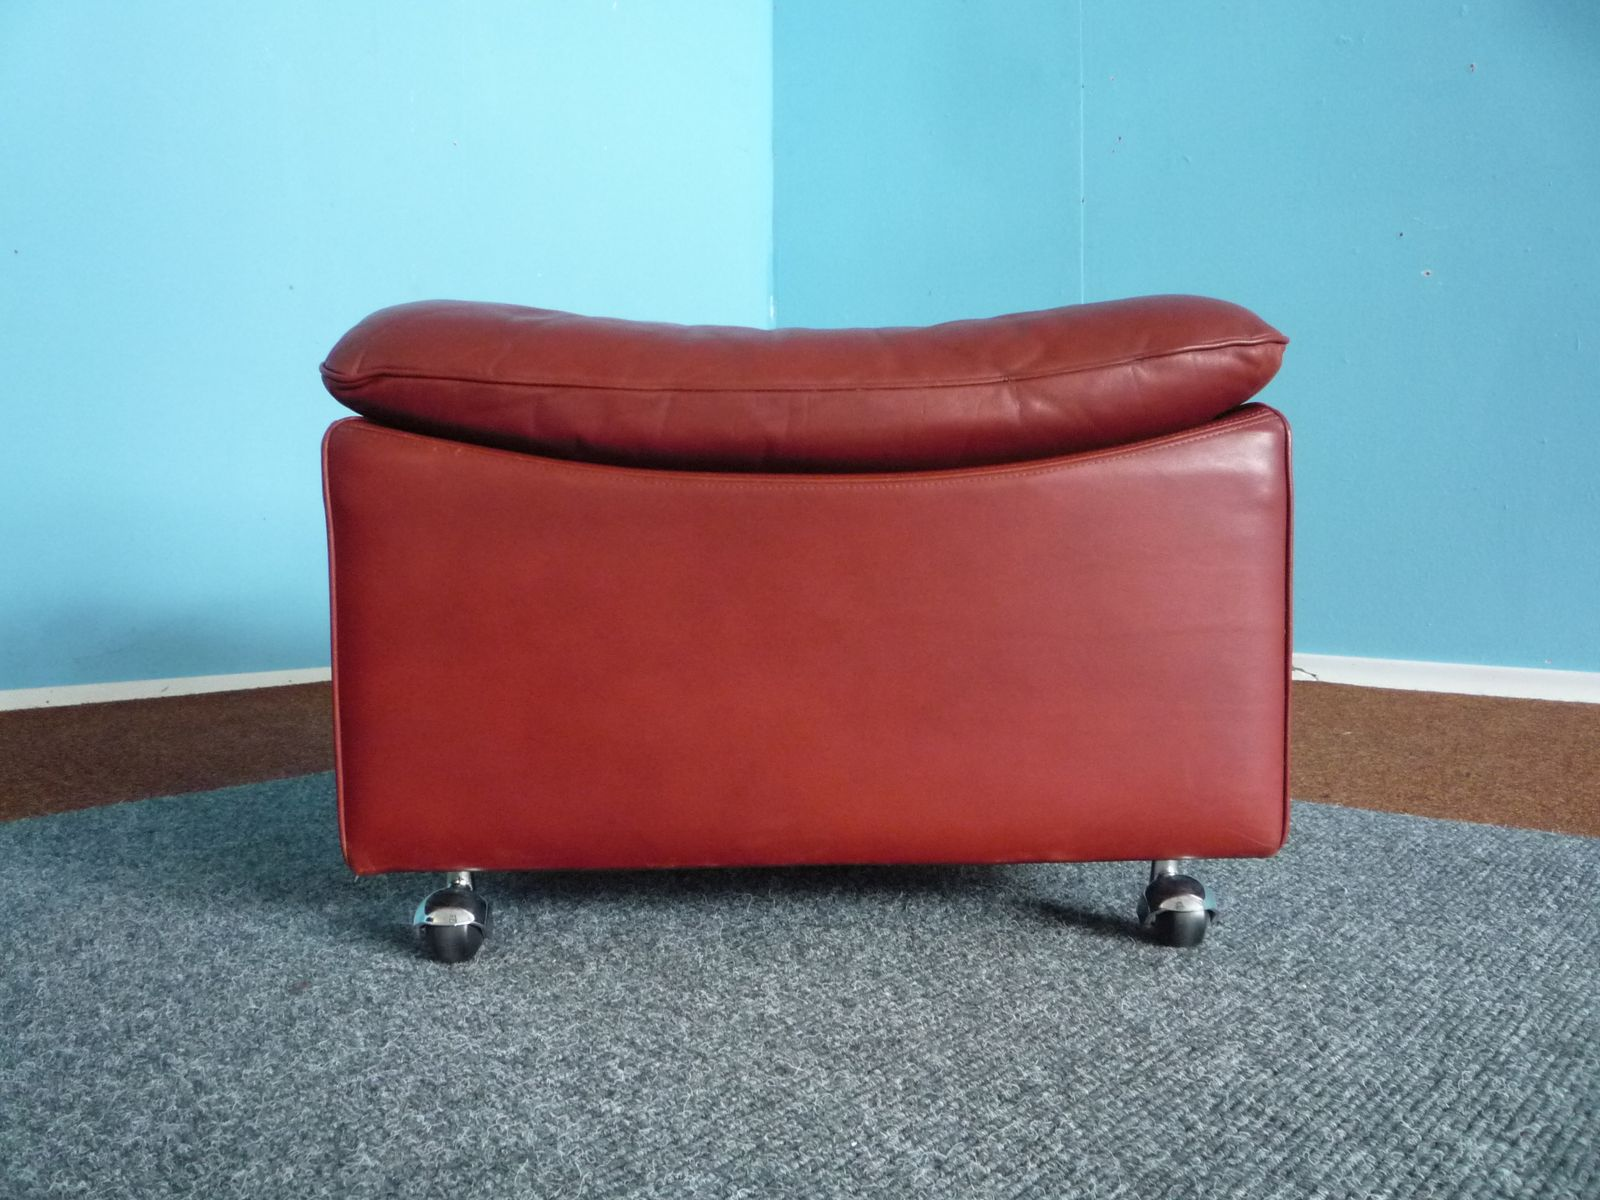 Leather Winged Armchair U0026 Ottoman From Kill International, 1970s For Sale  At Pamono